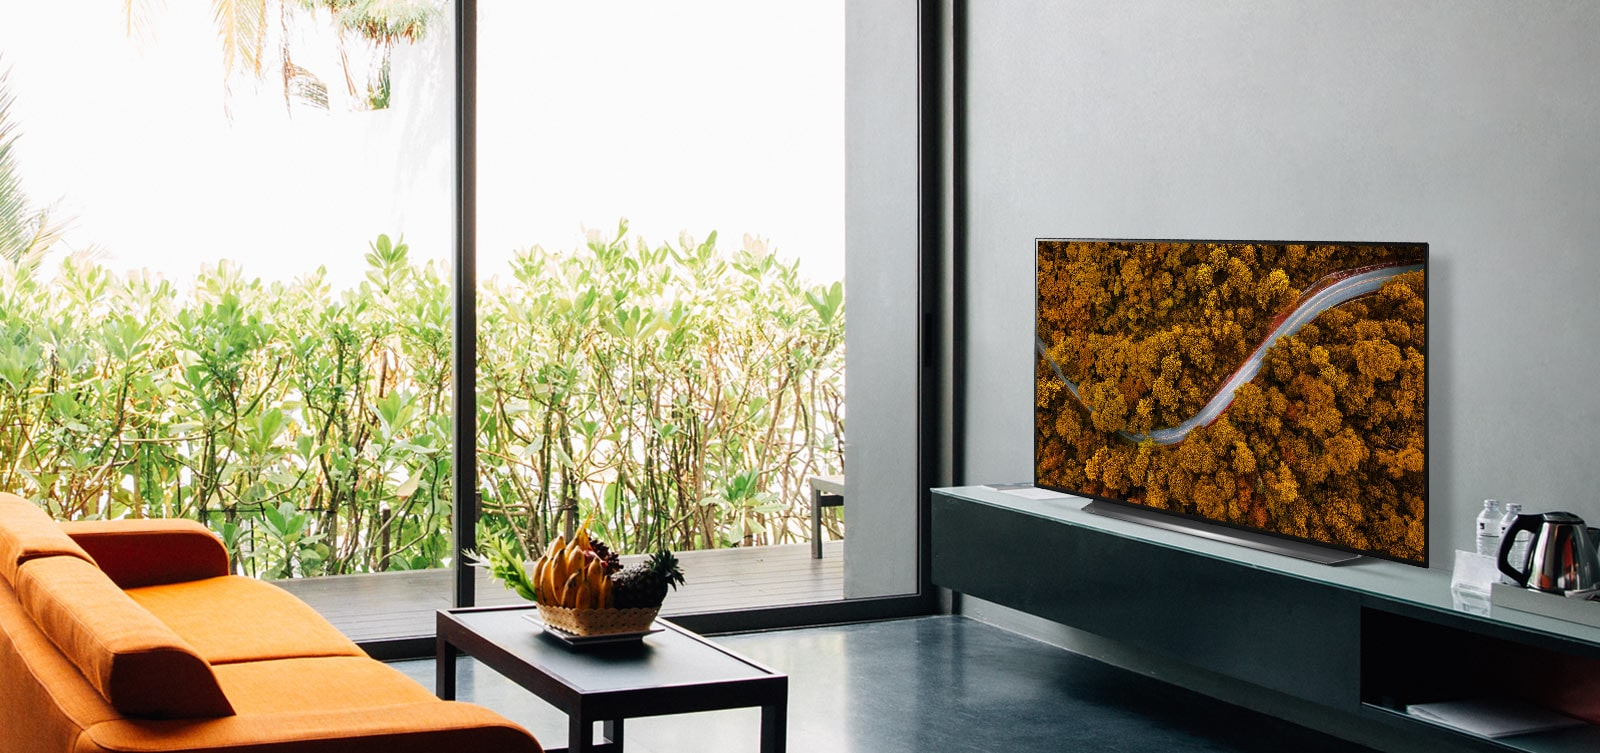 LG OLED55CXPTA stylish home addition